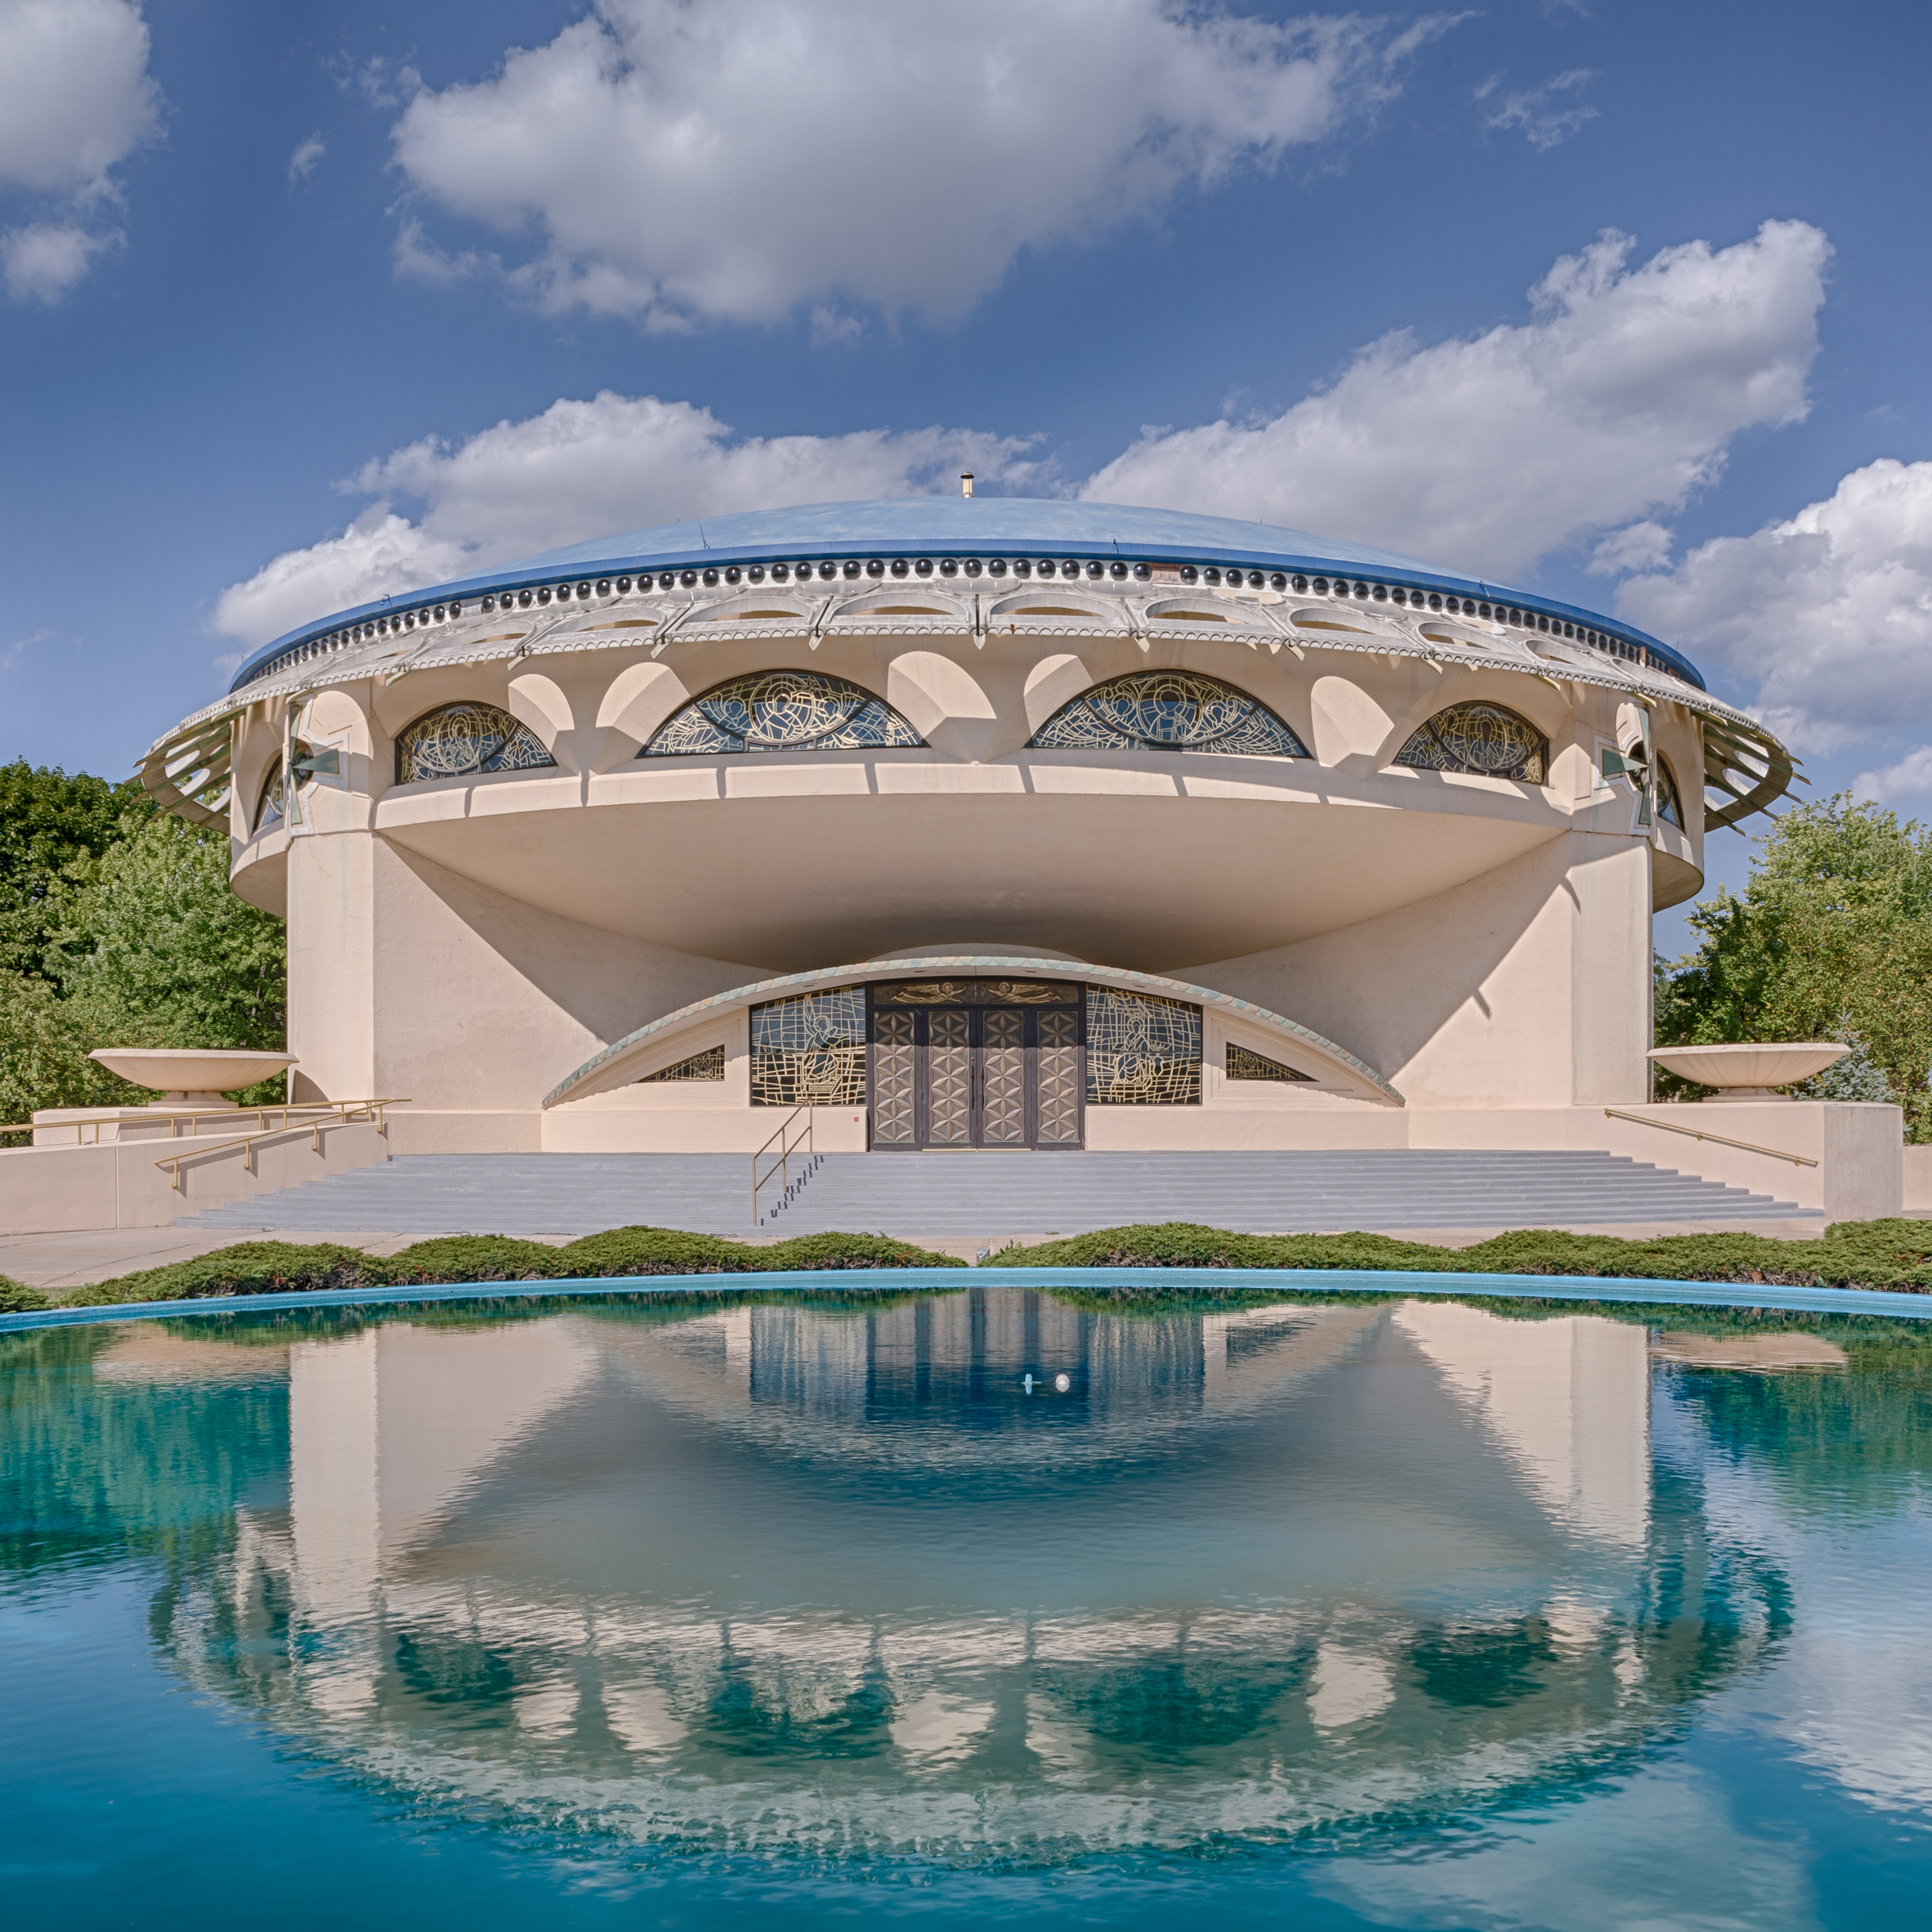 Frank Lloyd Wright: Explore His Amazing Projects Virtually frank lloyd wright Frank Lloyd Wright: Explore His Amazing Projects Virtually photographing wright andrew pielage frank lloyd wright designs dezeen sq